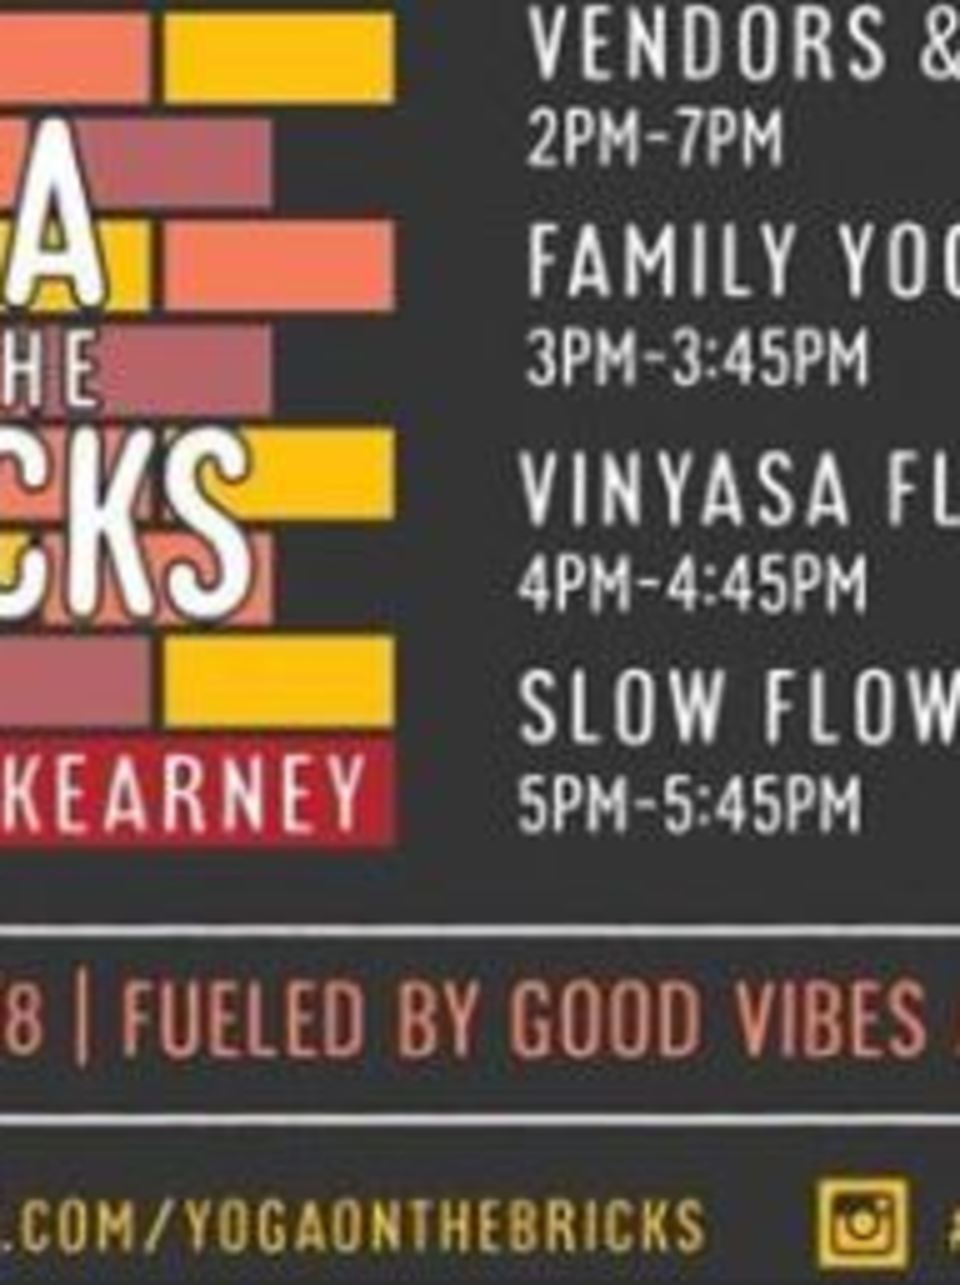 New Event Hopes To Bring All Abilities And Body Types Together Through Yoga Khgi